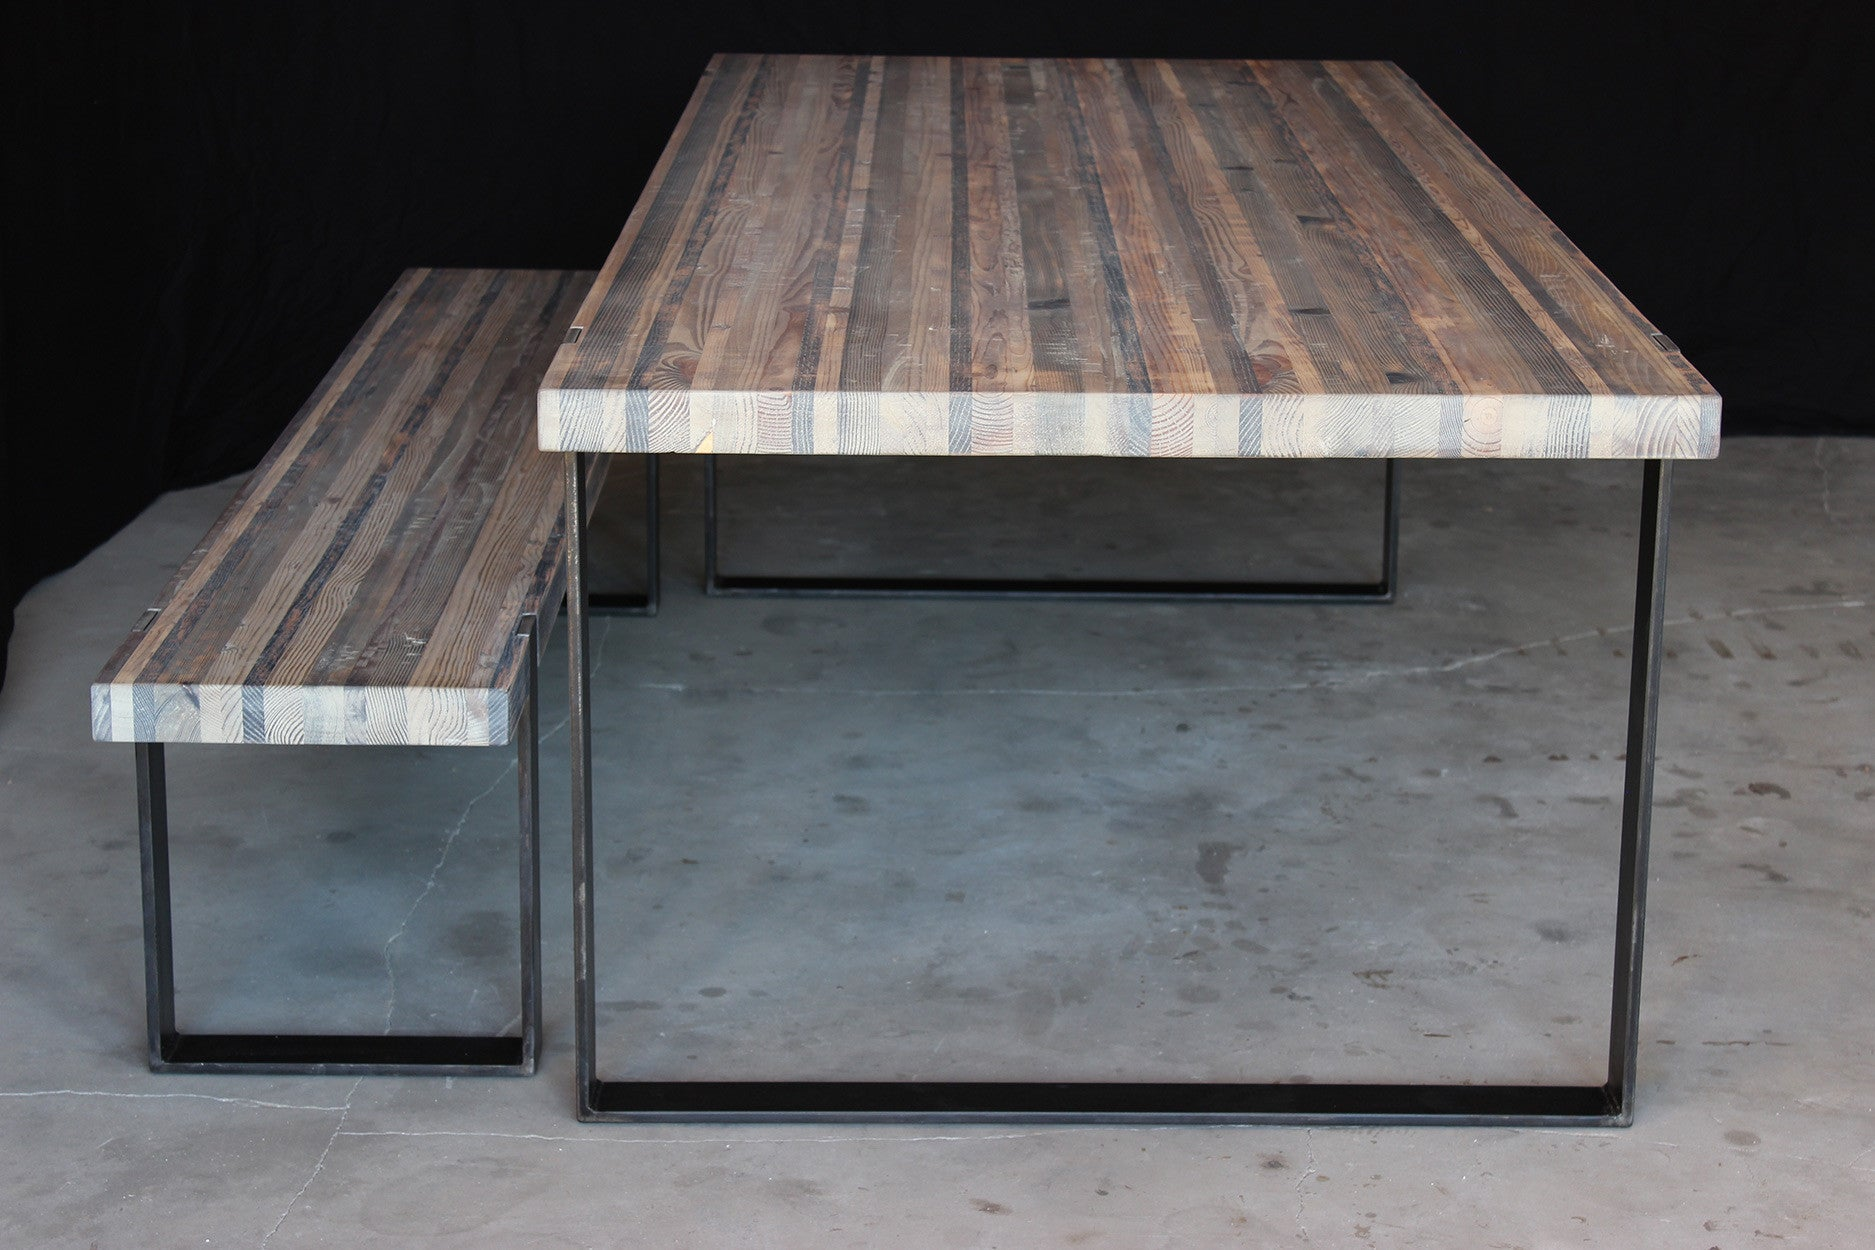 8' original dining table | aged wood finish with waxed steel